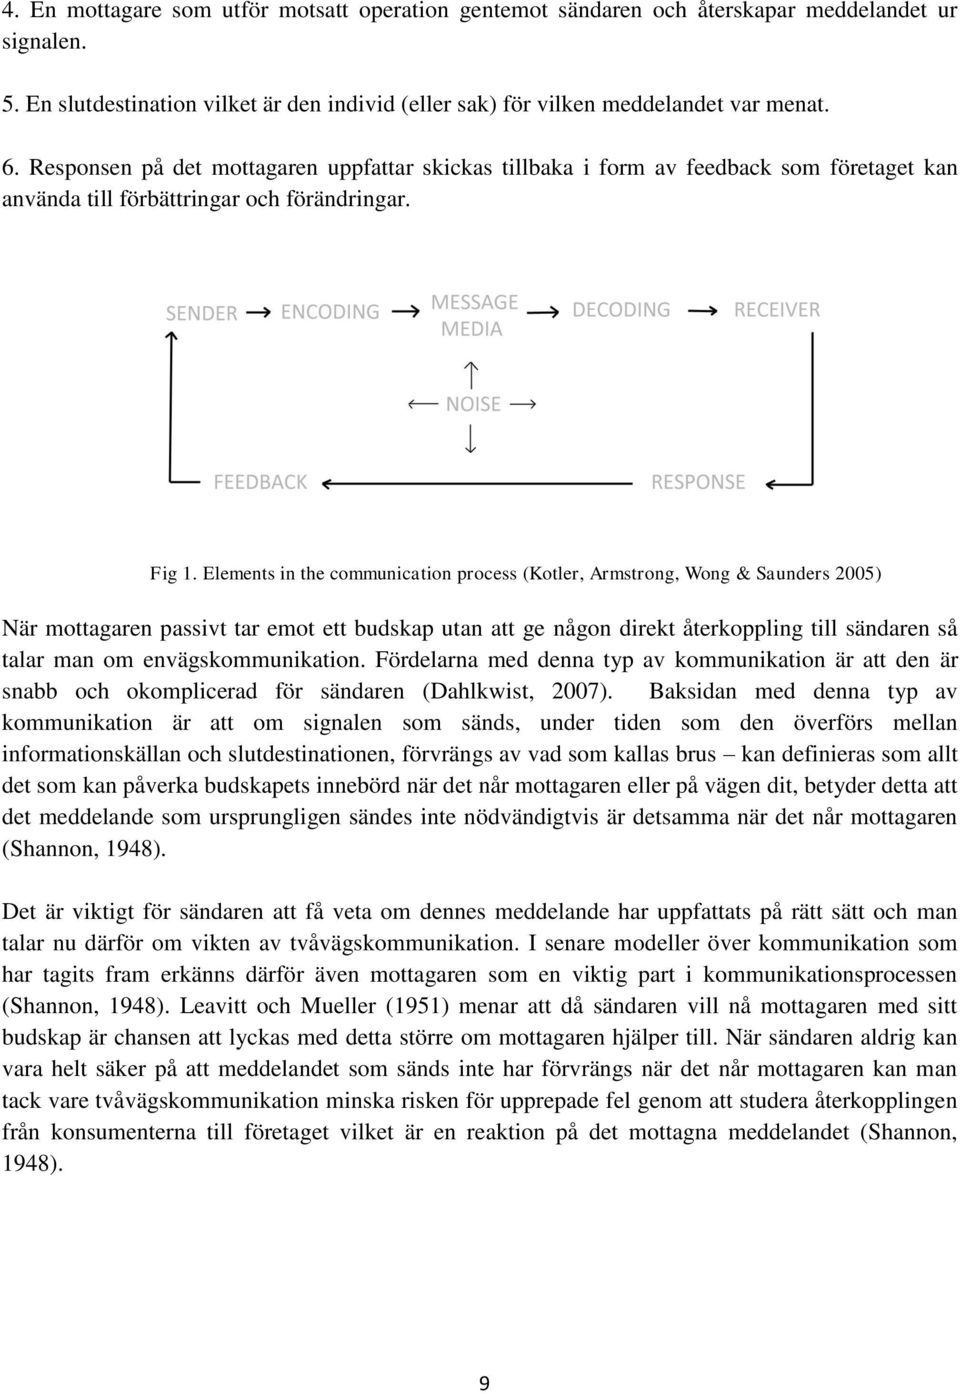 Elements in the communication process (Kotler, Armstrong, Wong & Saunders 2005) När mottagaren passivt tar emot ett budskap utan att ge någon direkt återkoppling till sändaren så talar man om